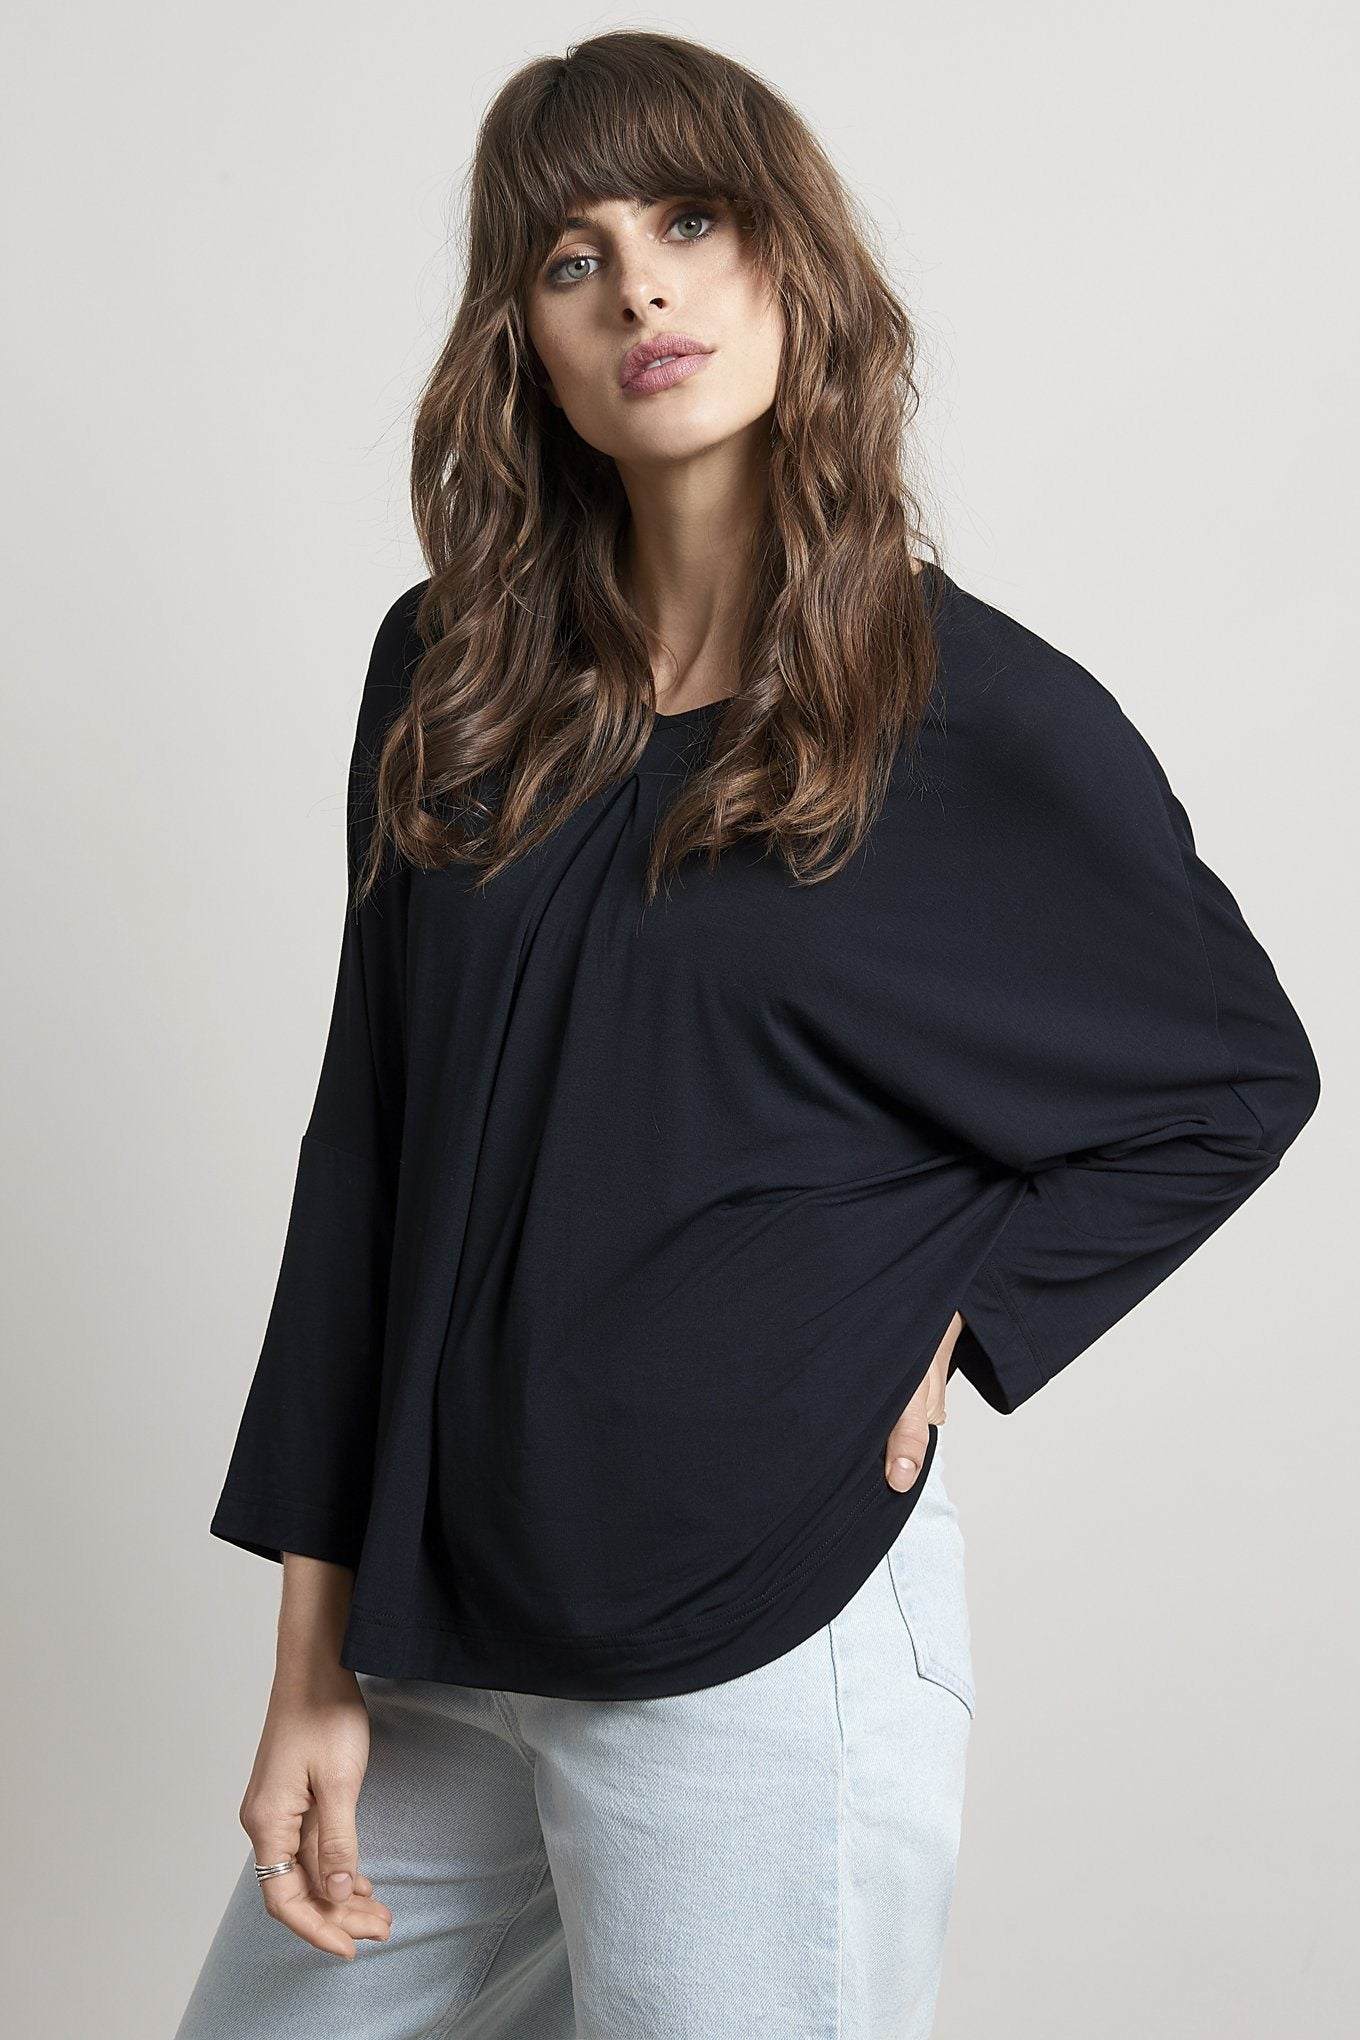 Top - OCEAN Bamboo Pleat Top Black